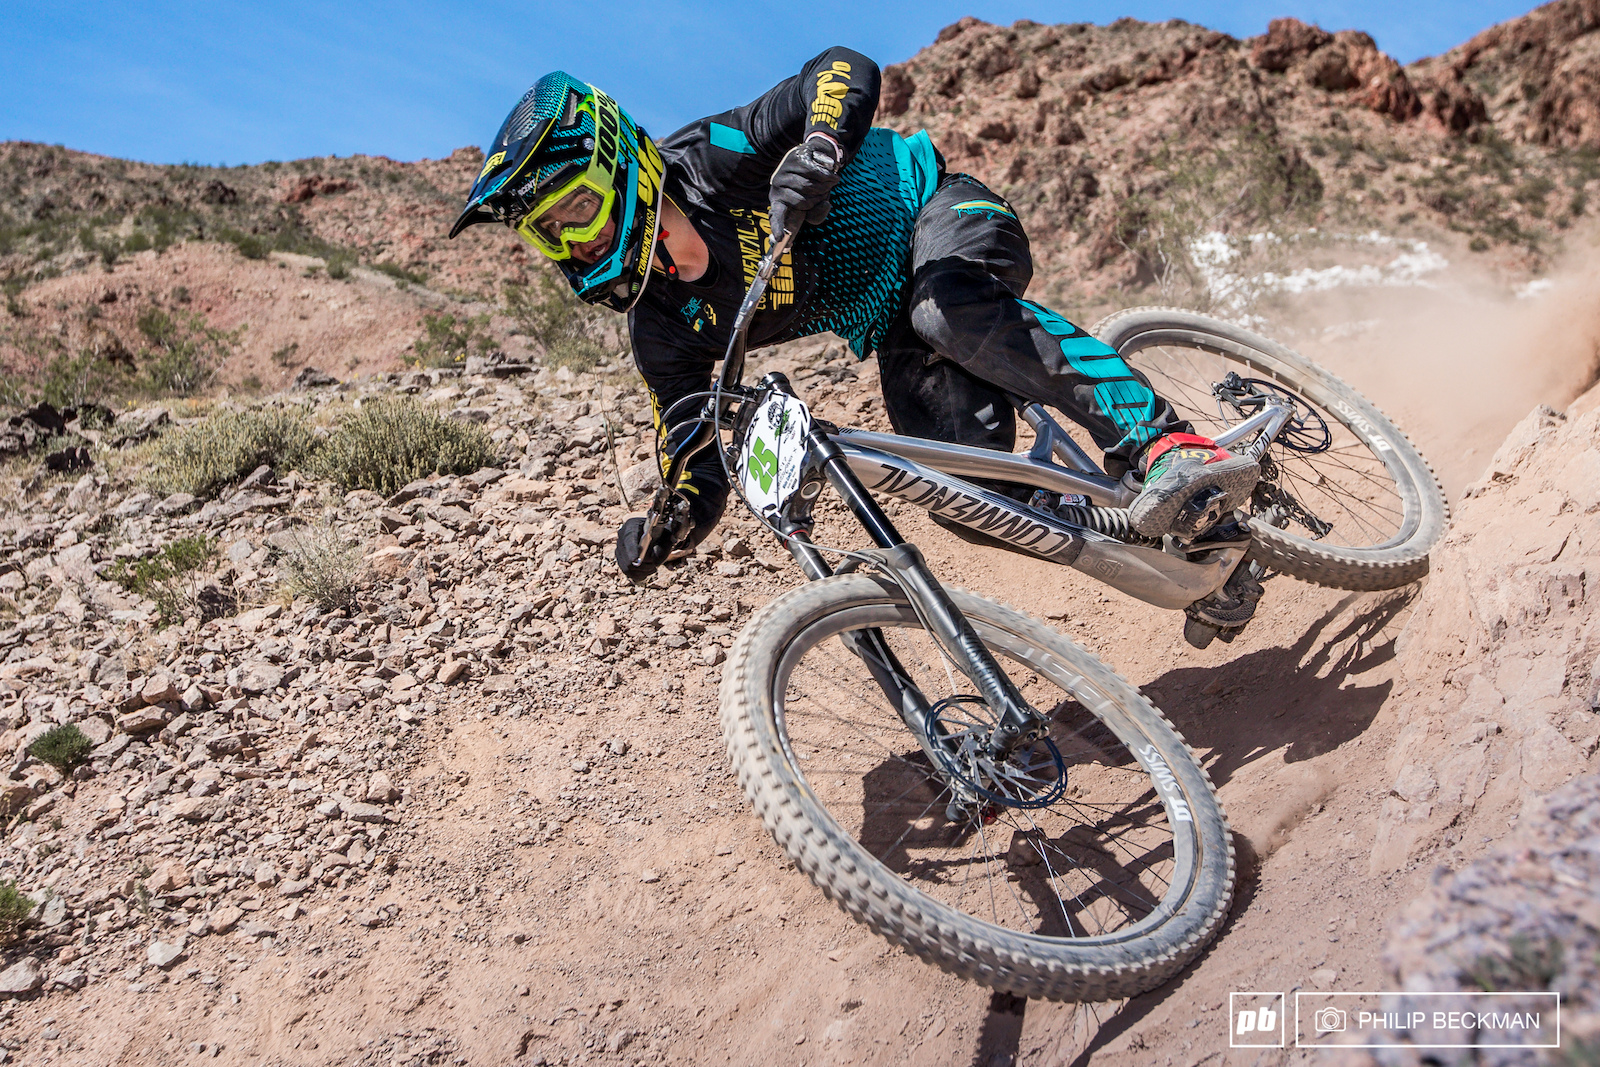 Steven Walton Commencal set the fourth best time of the day in the DH. But it was also the best in his class Cat 1 Men 17-18 otherwise known as Junior Expert.